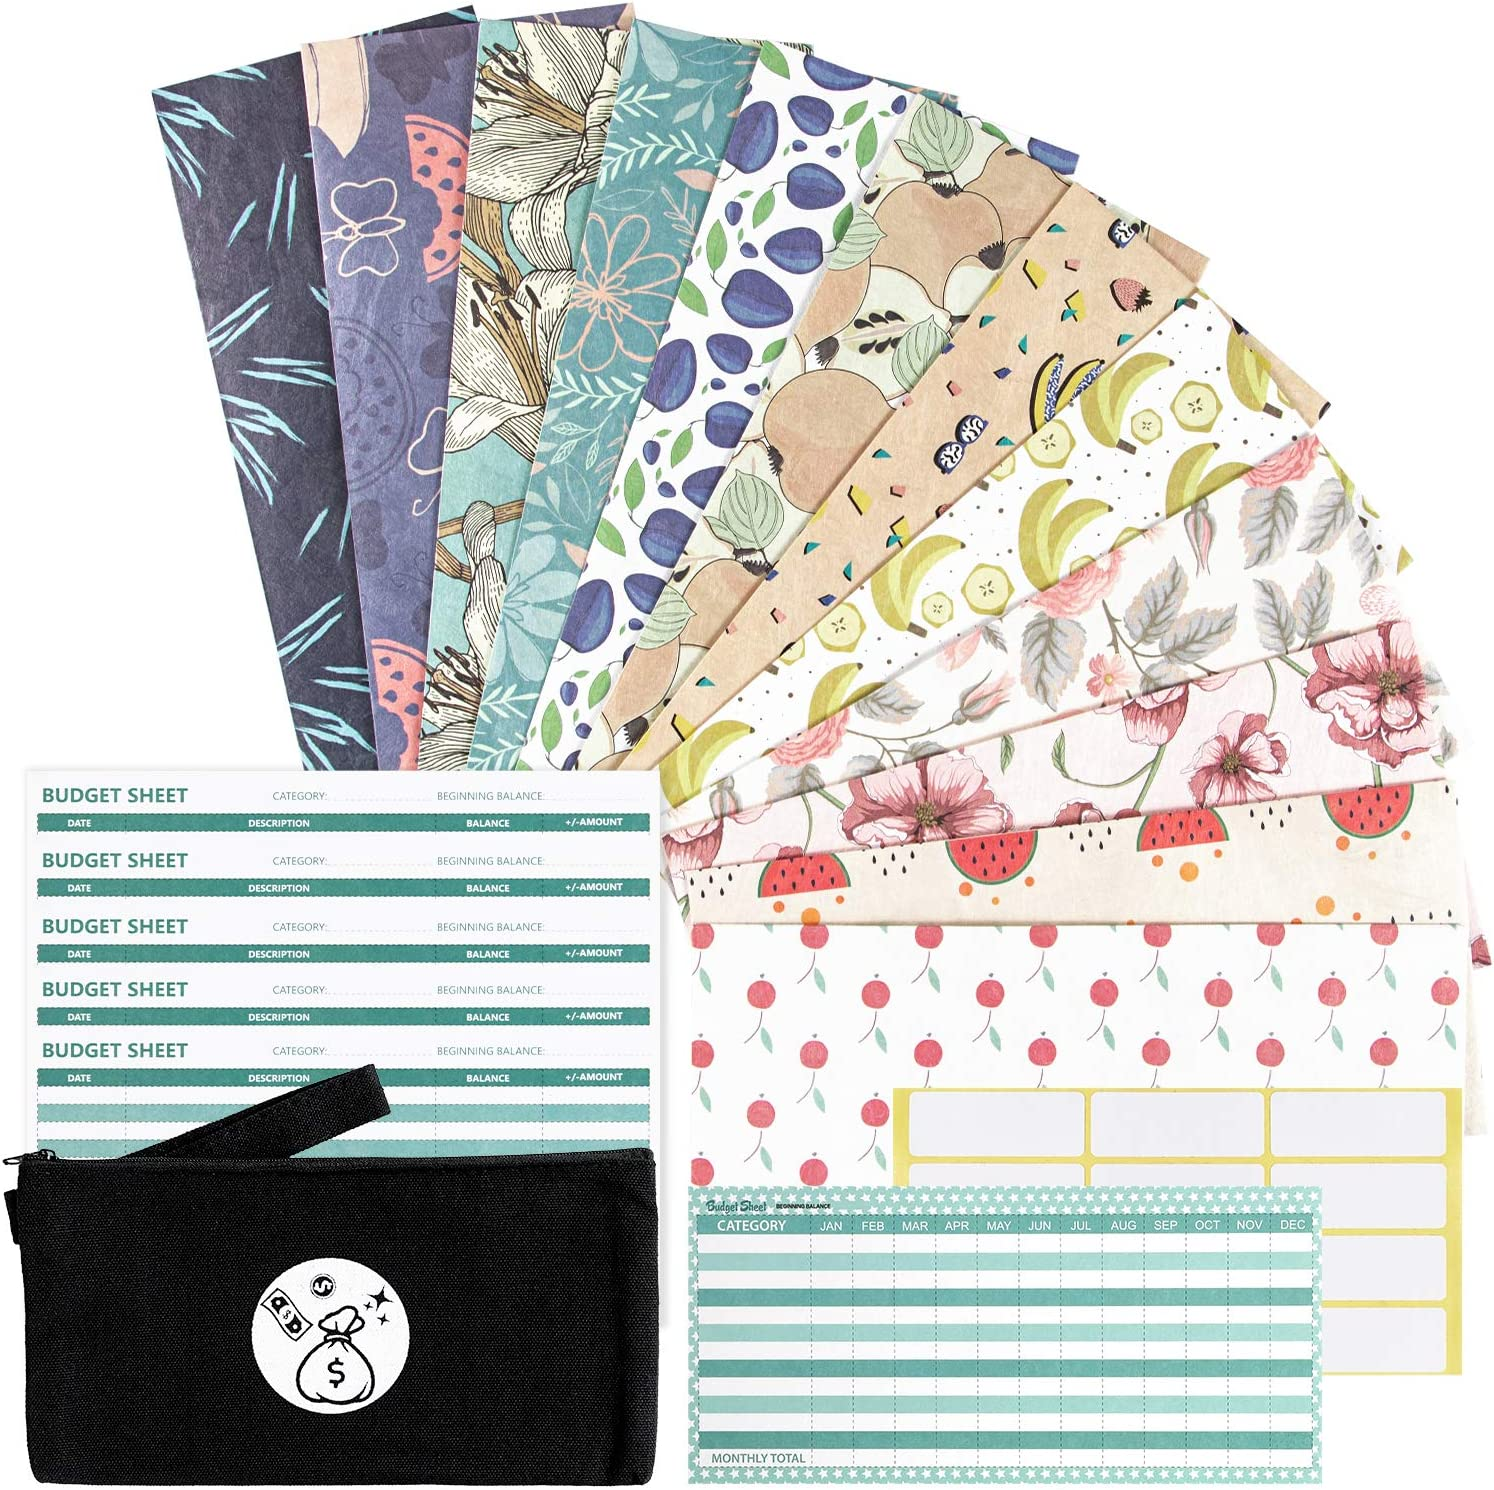 Cash Envelopes Waterproof Budget Envelopes - 12 Money Envelopes + 12 Budget Sheets + 1 Annual Budget Sheet + 1 Carry Pouch, Gift Envelopes Expense Tracking Budget Envelopes for Cash Currency : Office Products